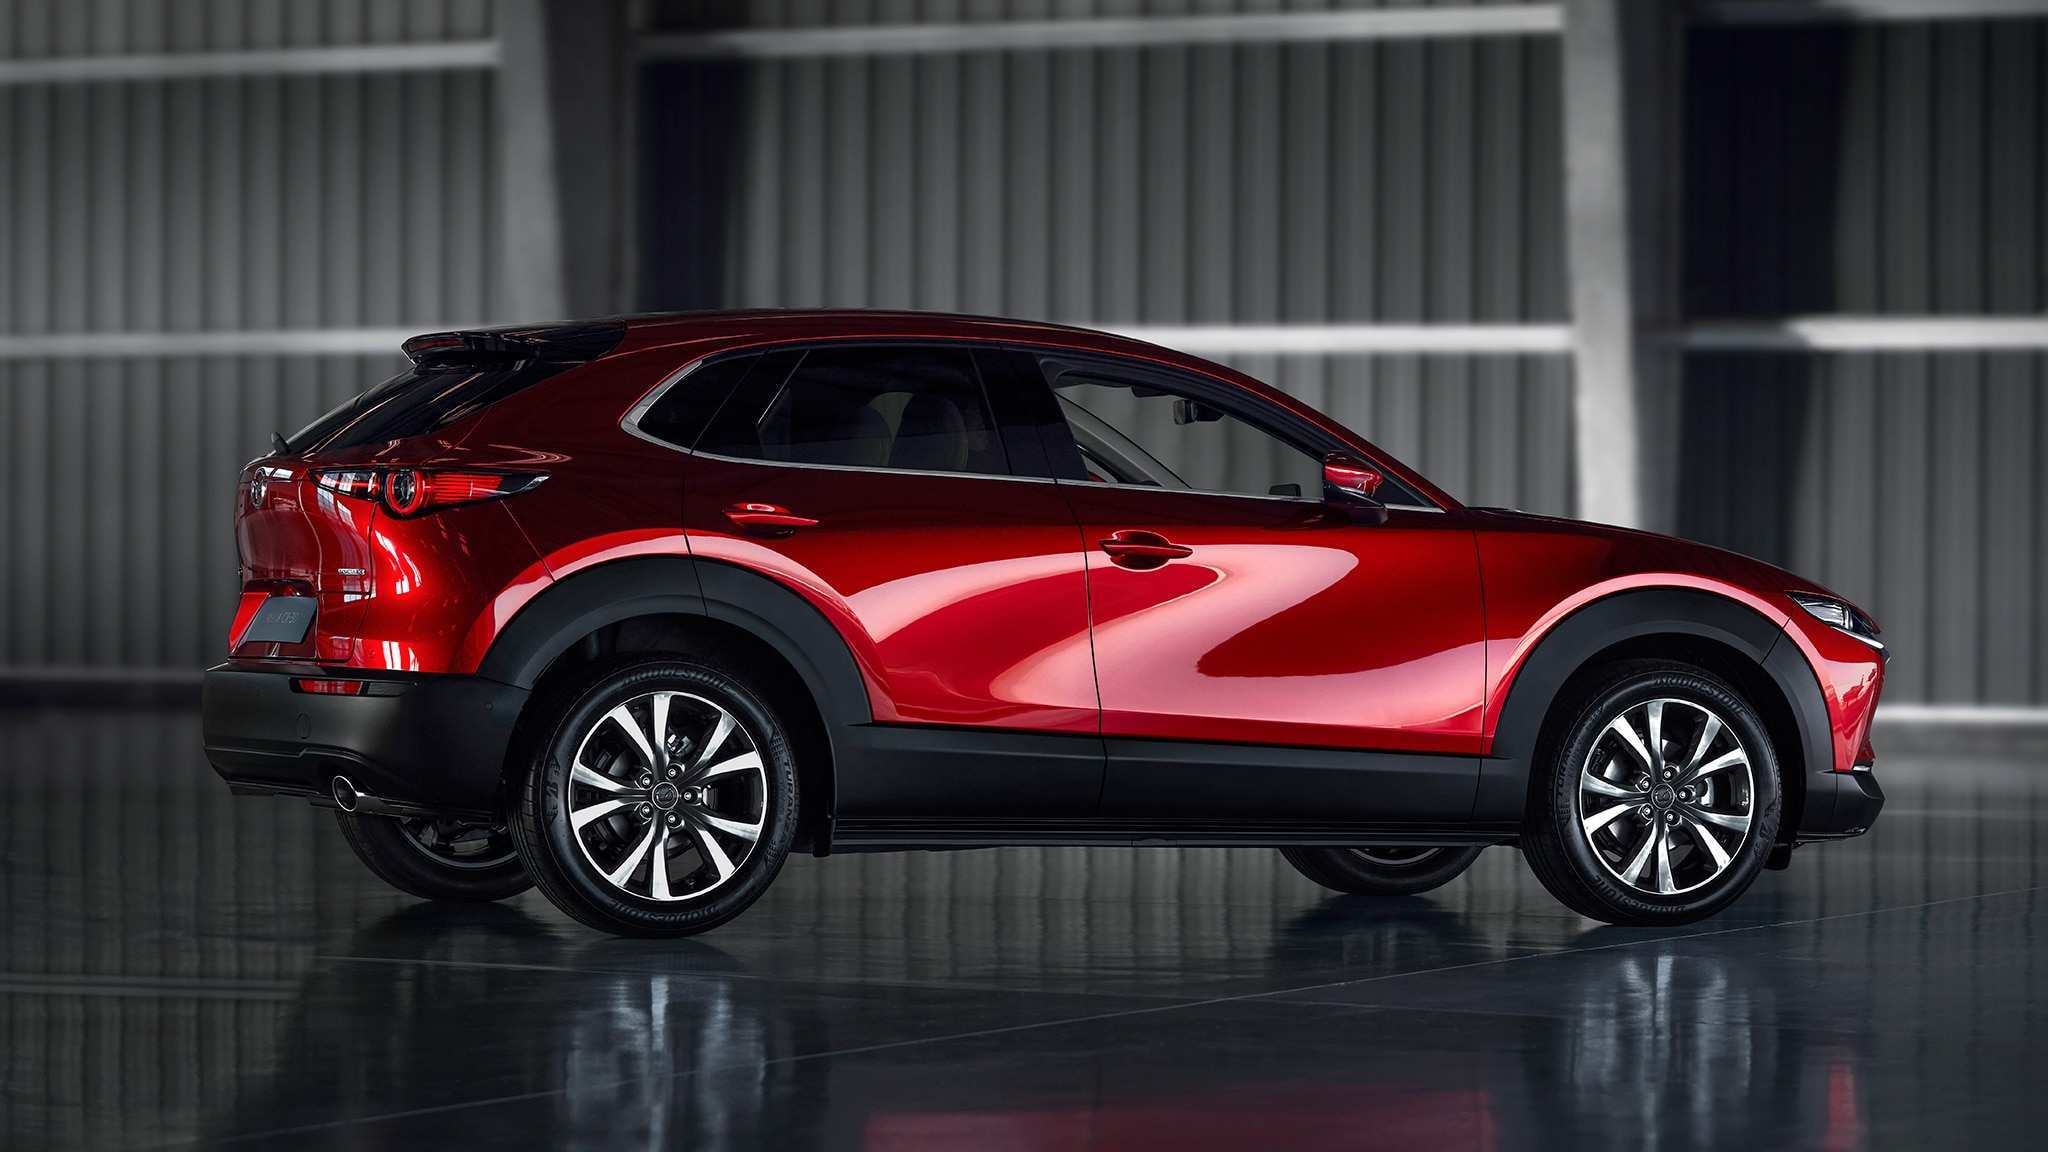 17 All New When Will The 2020 Mazda Cx 5 Be Available New Review for When Will The 2020 Mazda Cx 5 Be Available